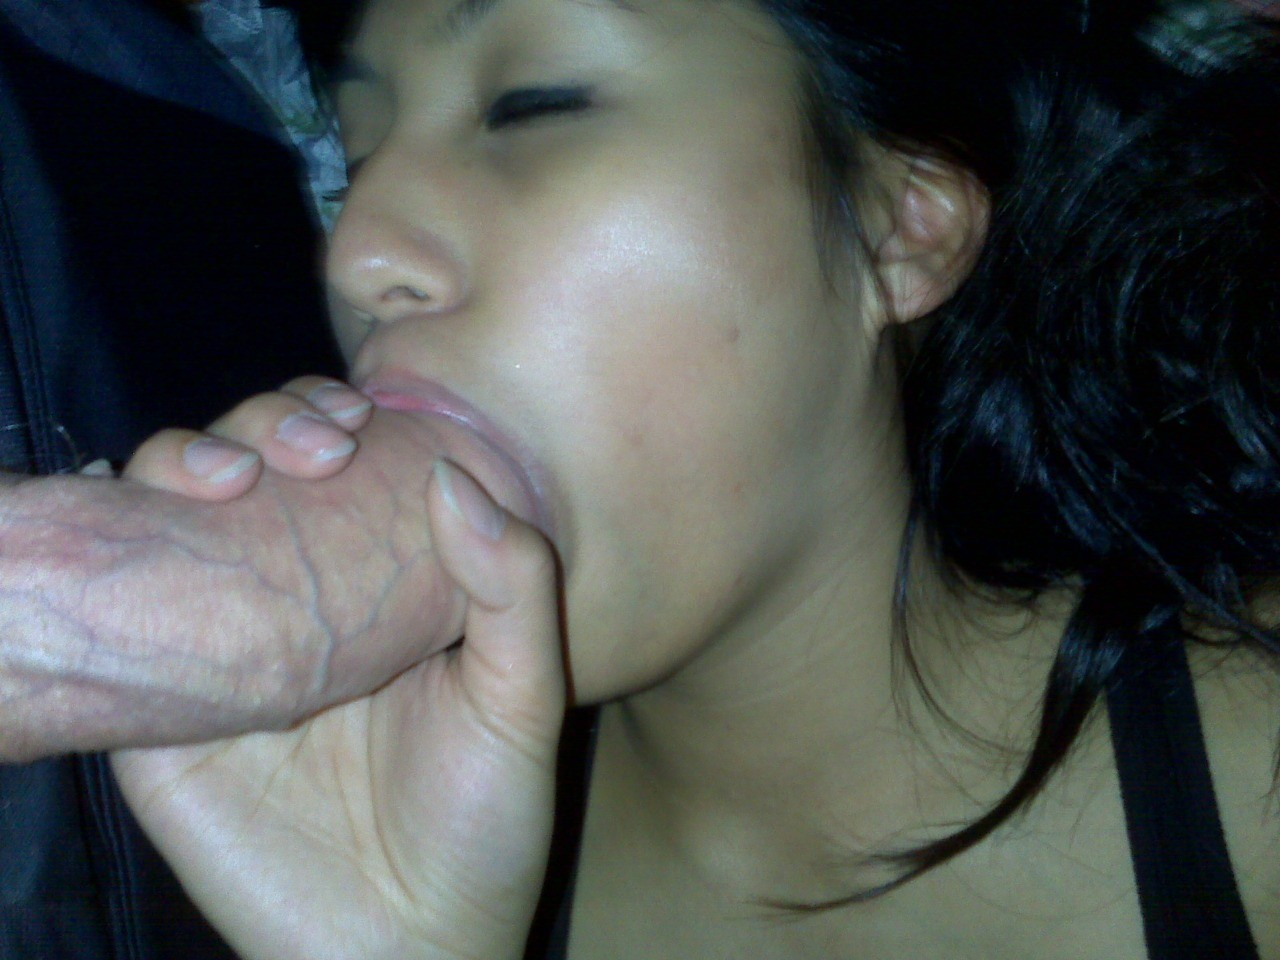 Petite Asian Big Dick Amateur